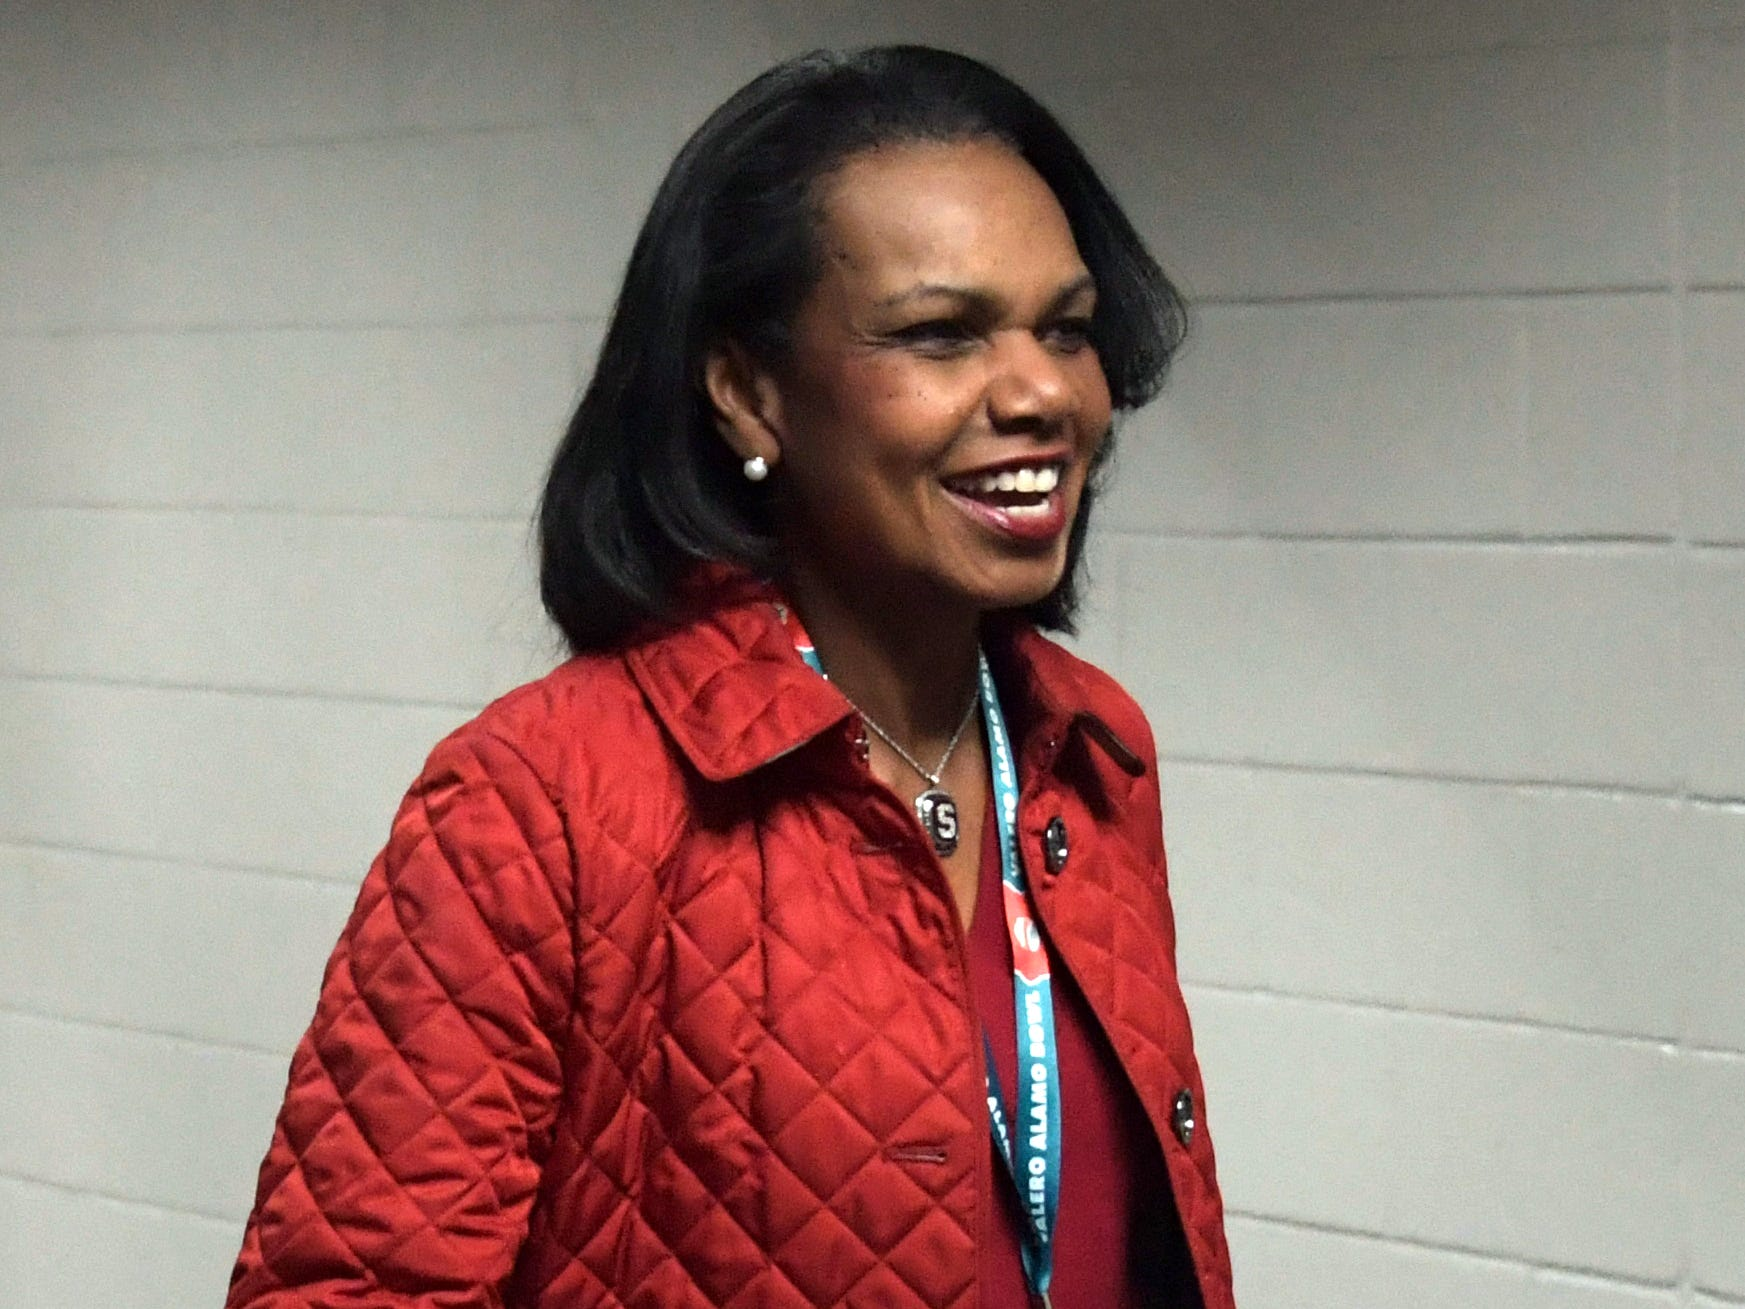 23. Browns (18): If Condoleezza Rice isn't really in the running to be Cleveland's next coach, does this mean Hue Jackson won't be Secretary of State?